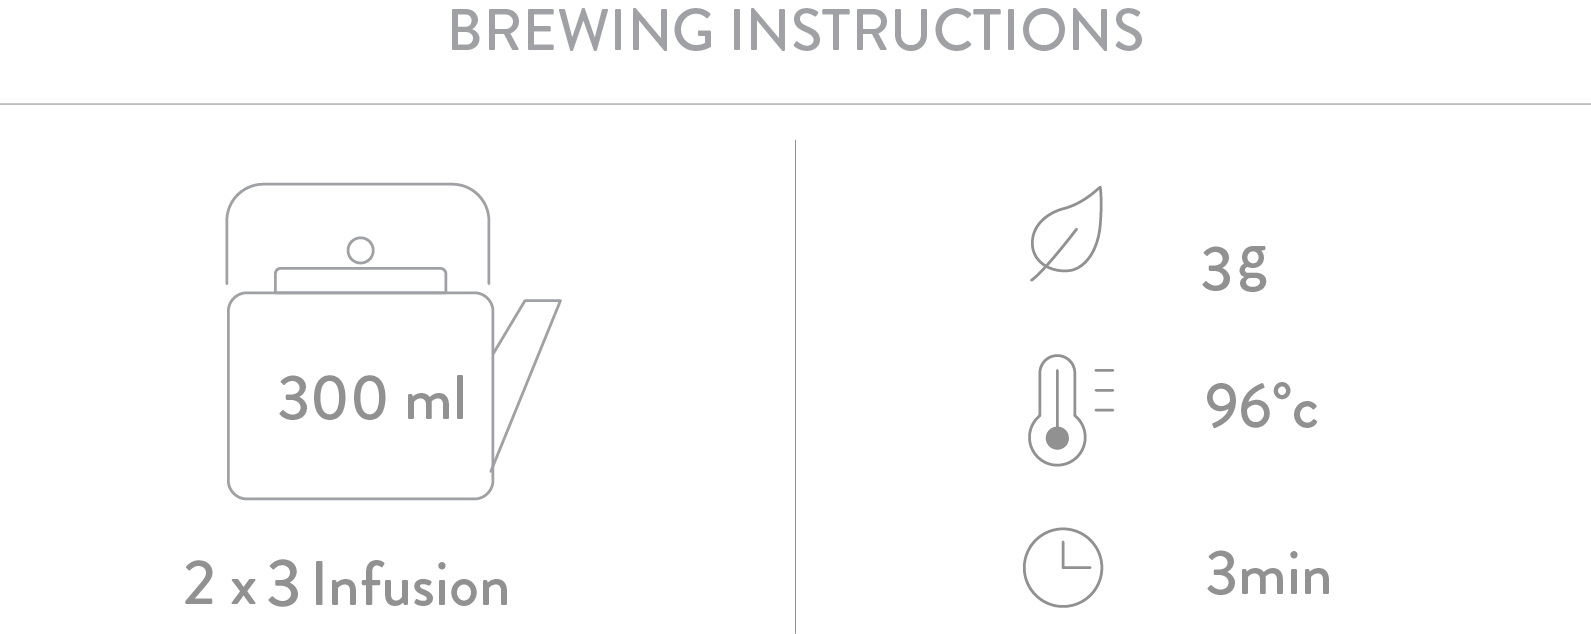 peppermint grade a_brewing method